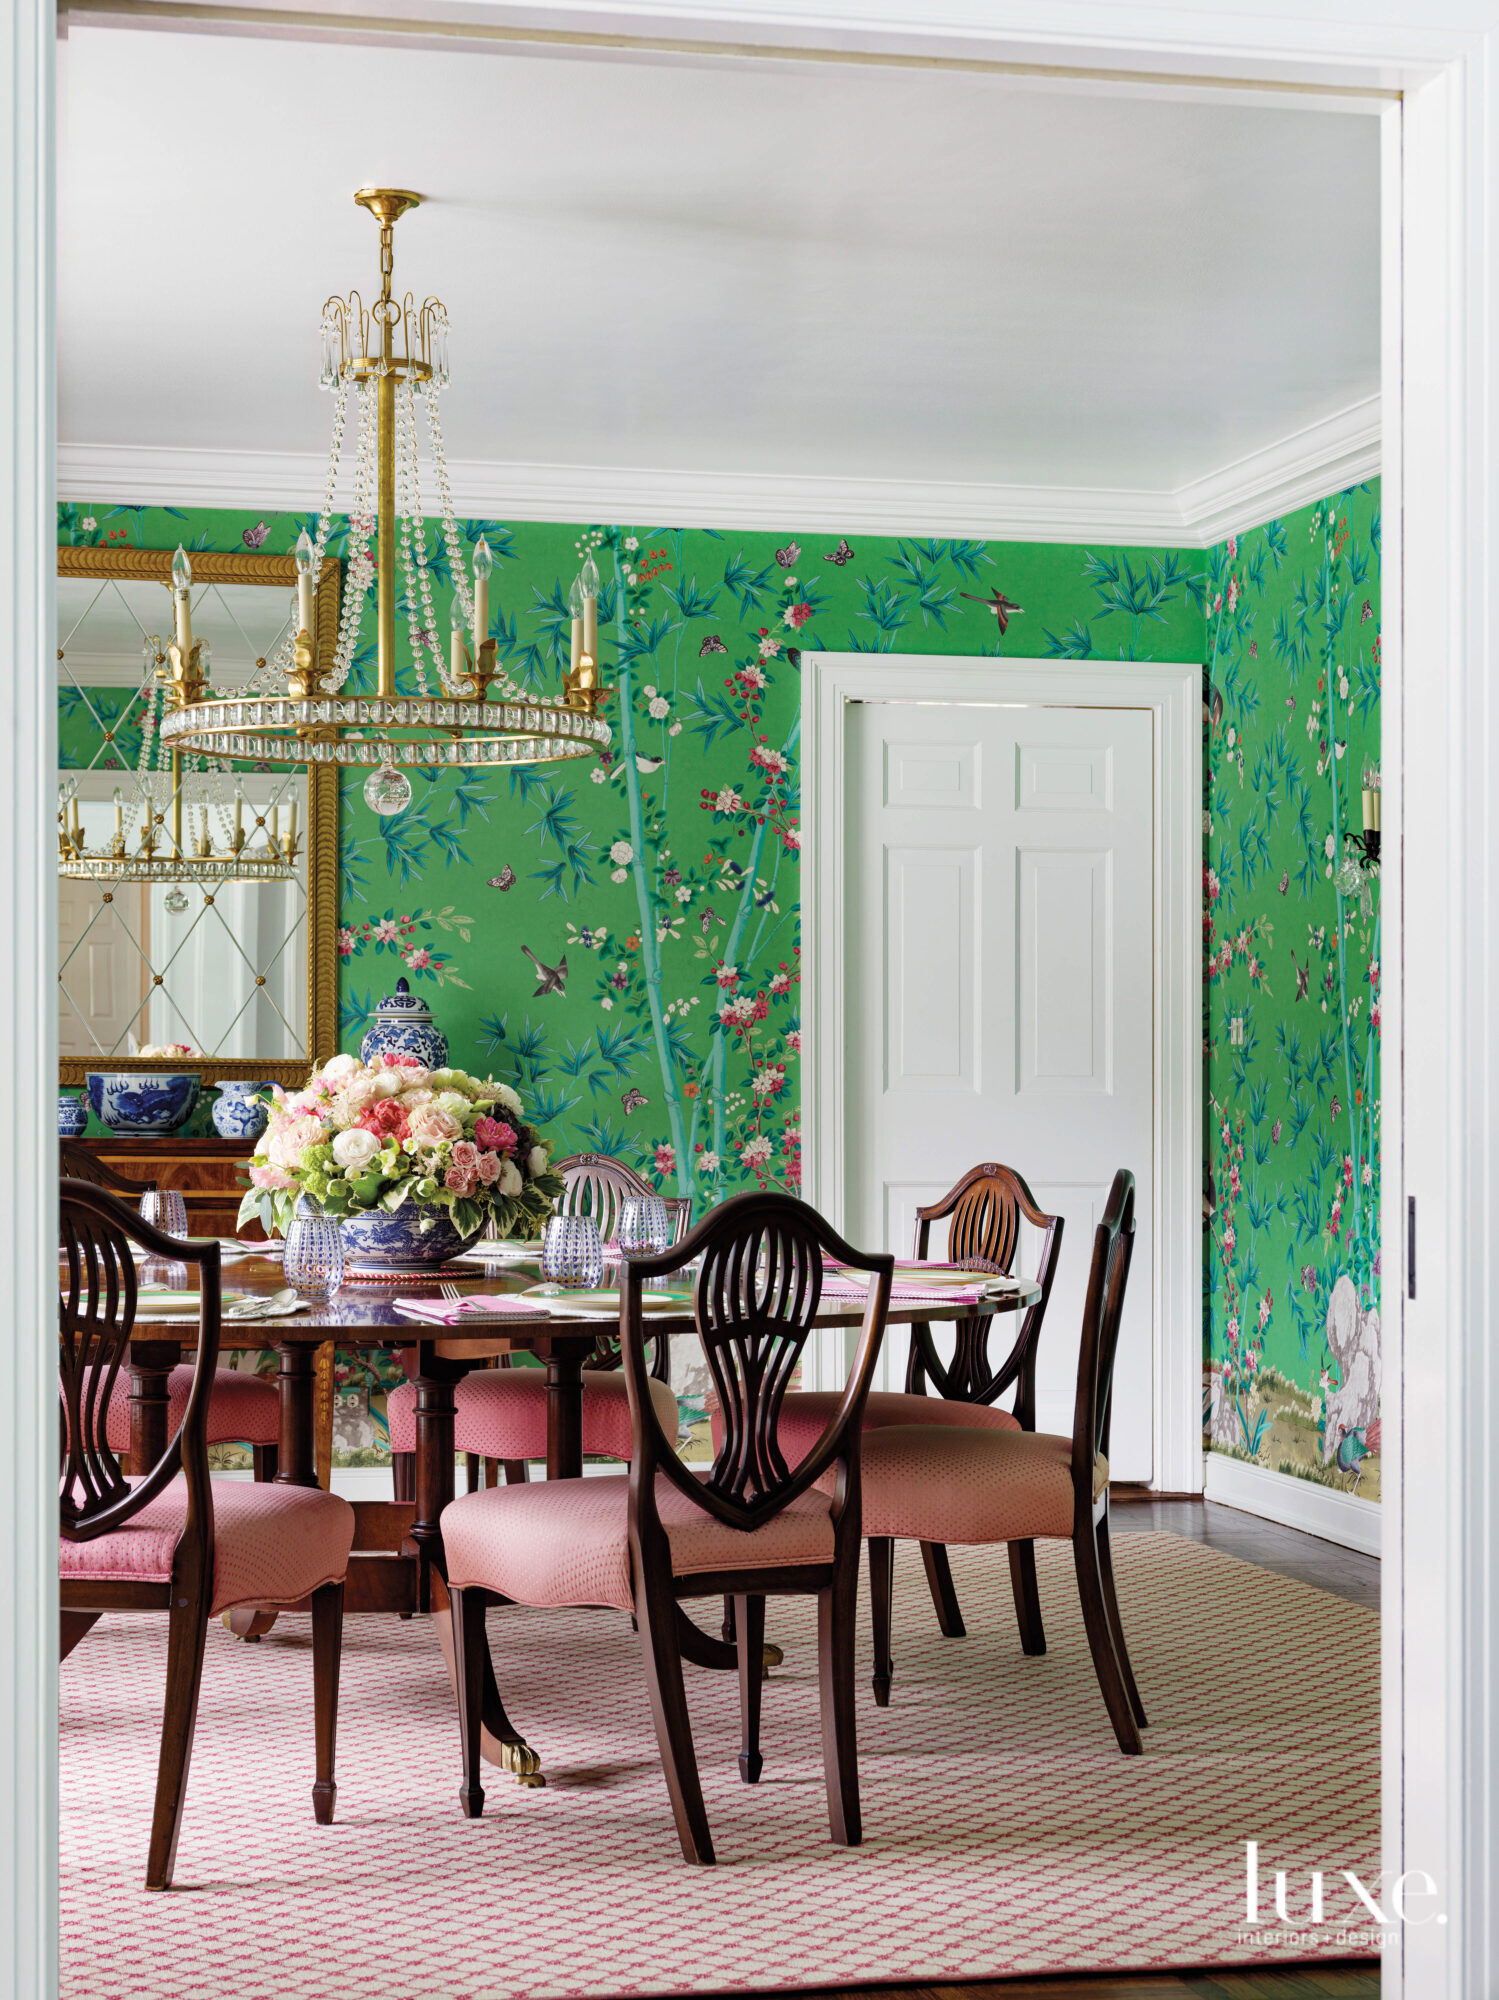 The dining room has green...